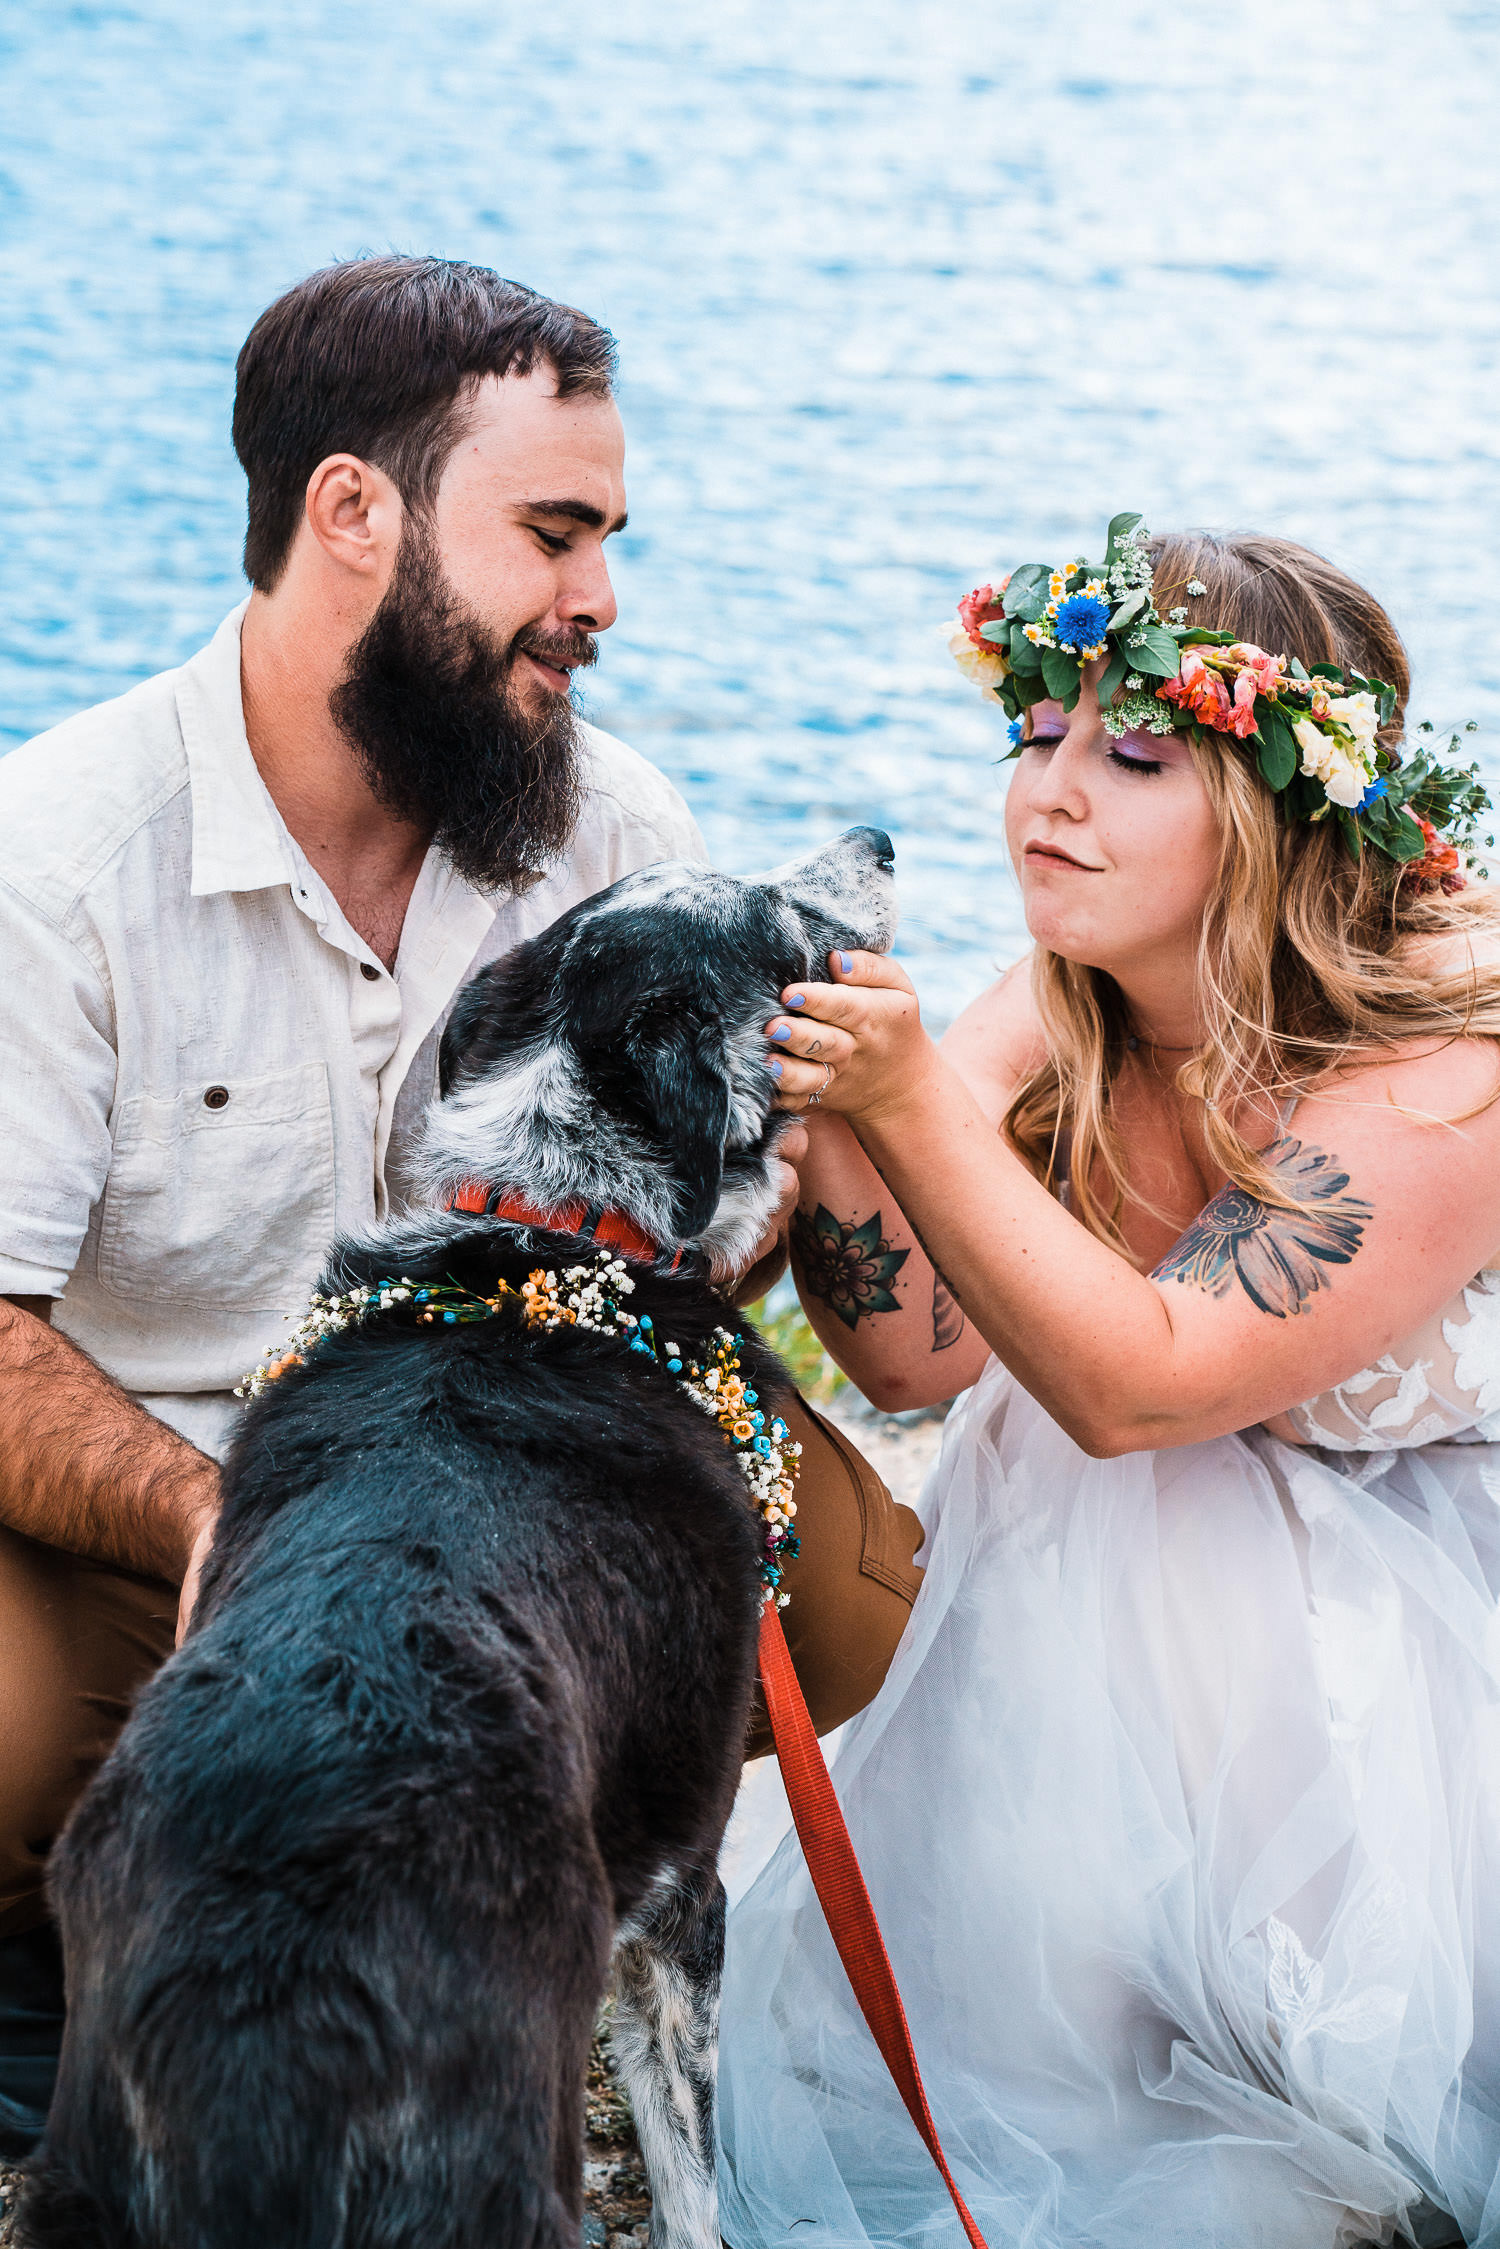 Your pets can sign your marriage license